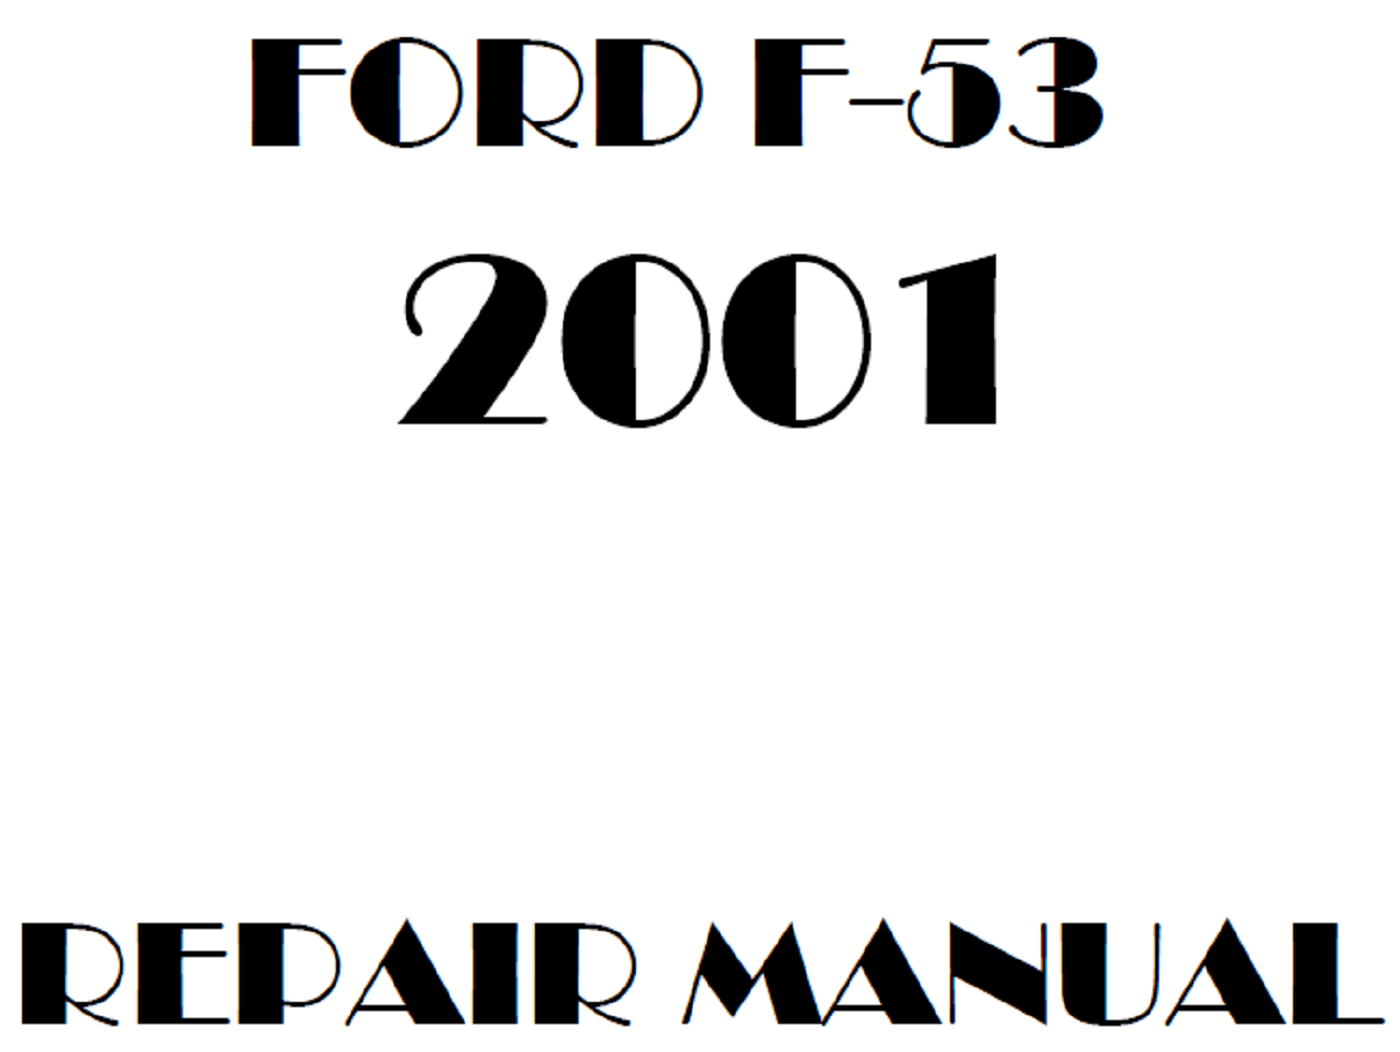 2001 Ford F53 repair manual